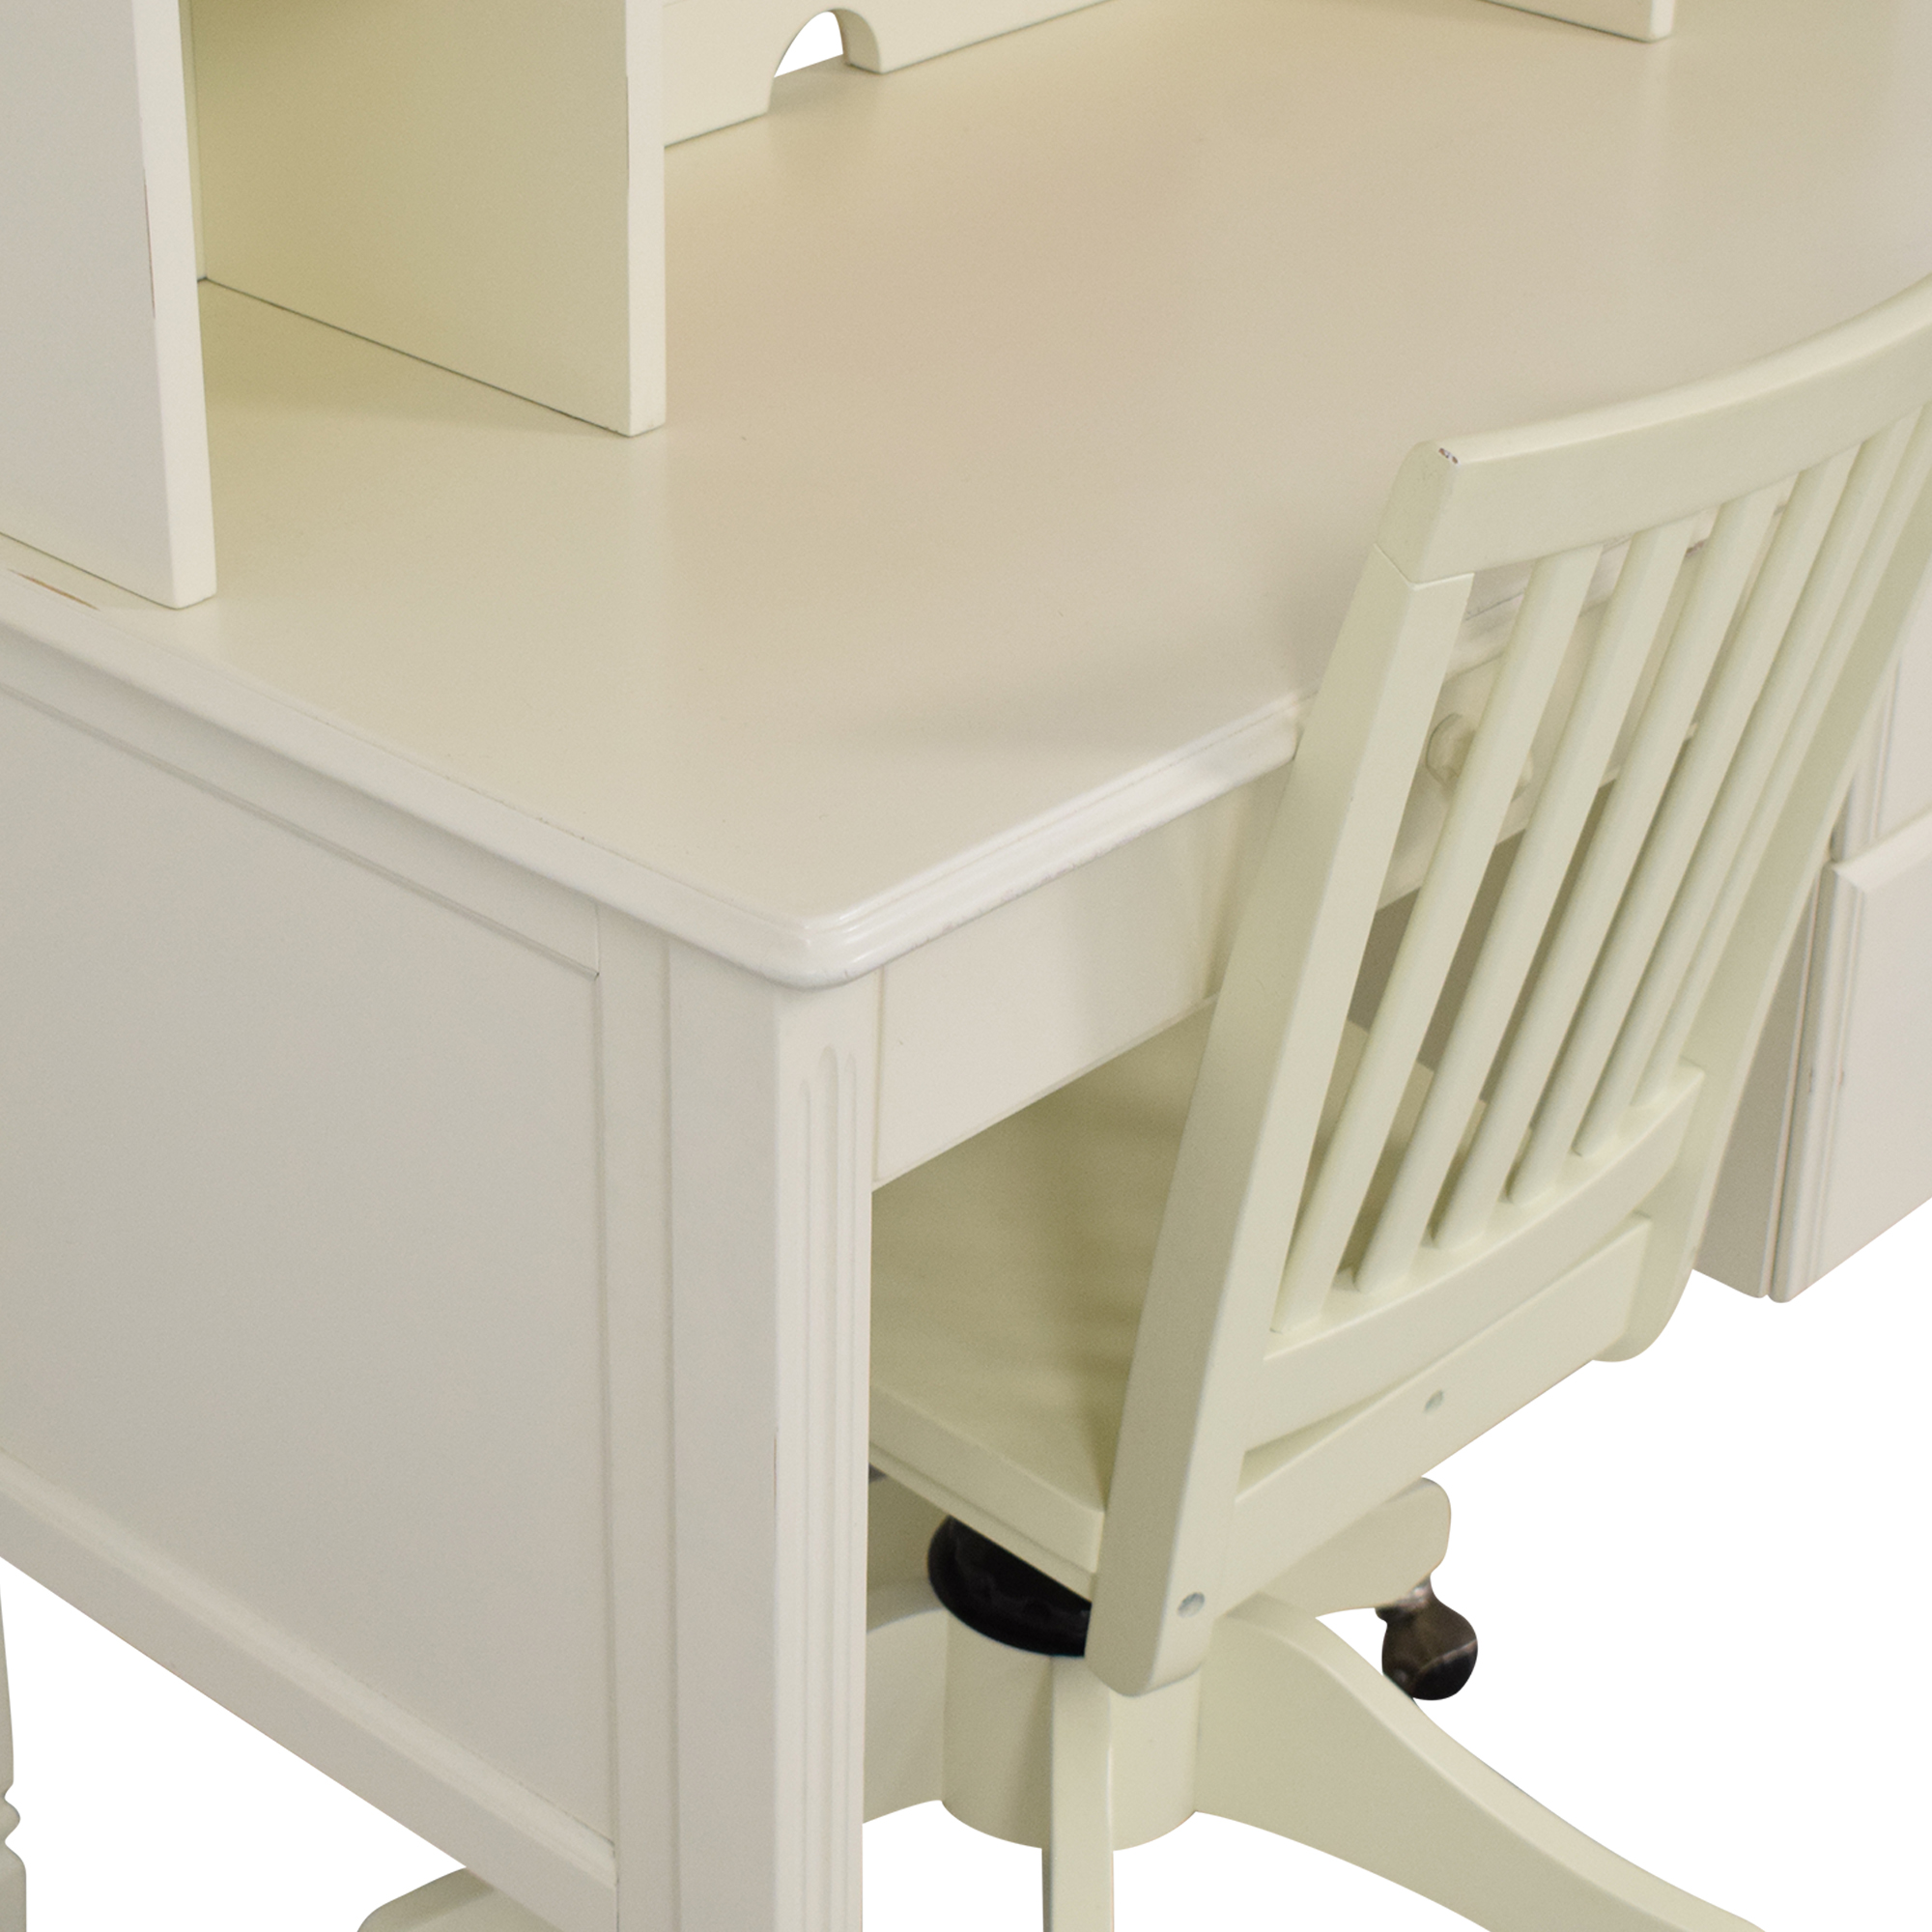 Pottery Barn Kids Pottery Barn Kids Madeline Desk and Hutch with Chair ct